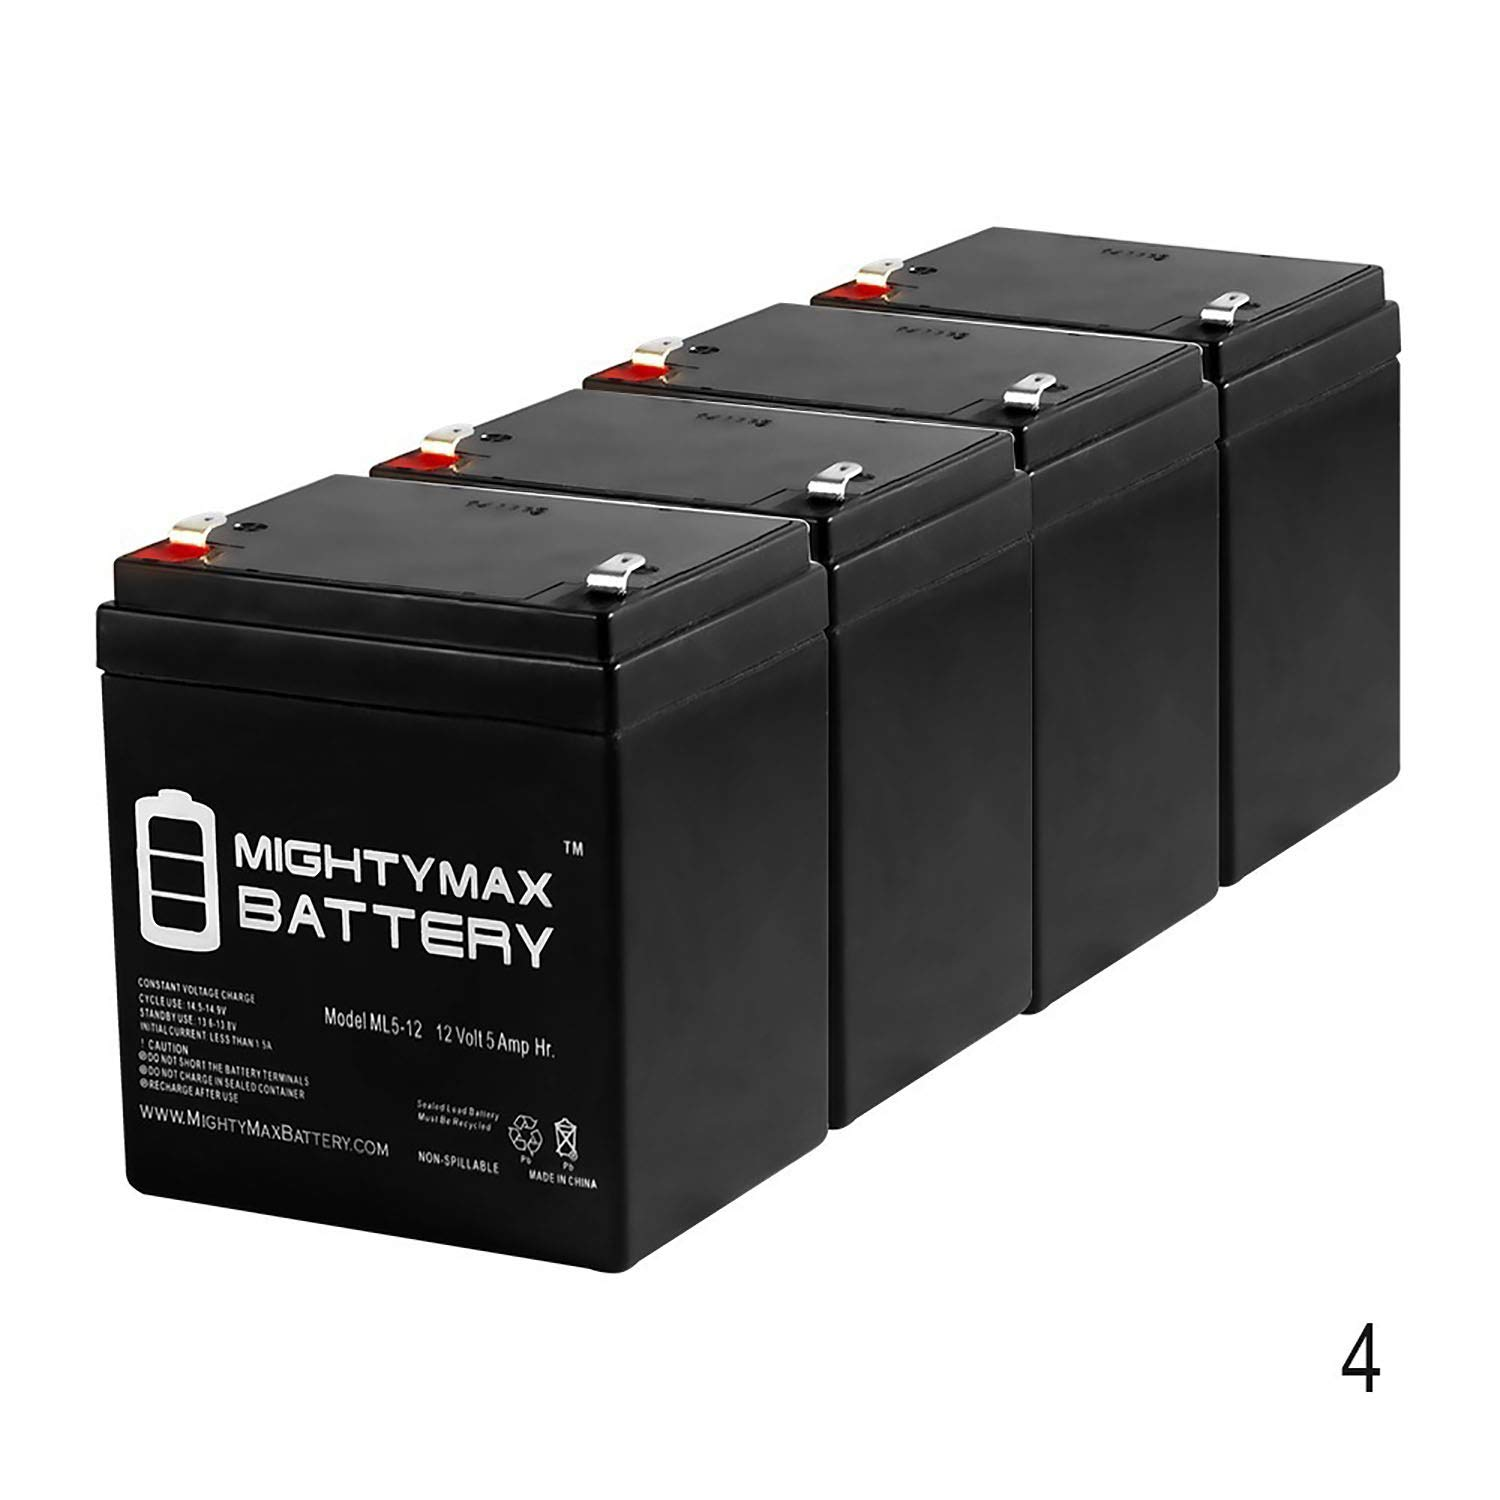 Mighty Max Battery ML5-12 - 12V 5AH Battery for Razor E100 E125 E150 E175 Electric Scooter - 4 Pack Brand Product